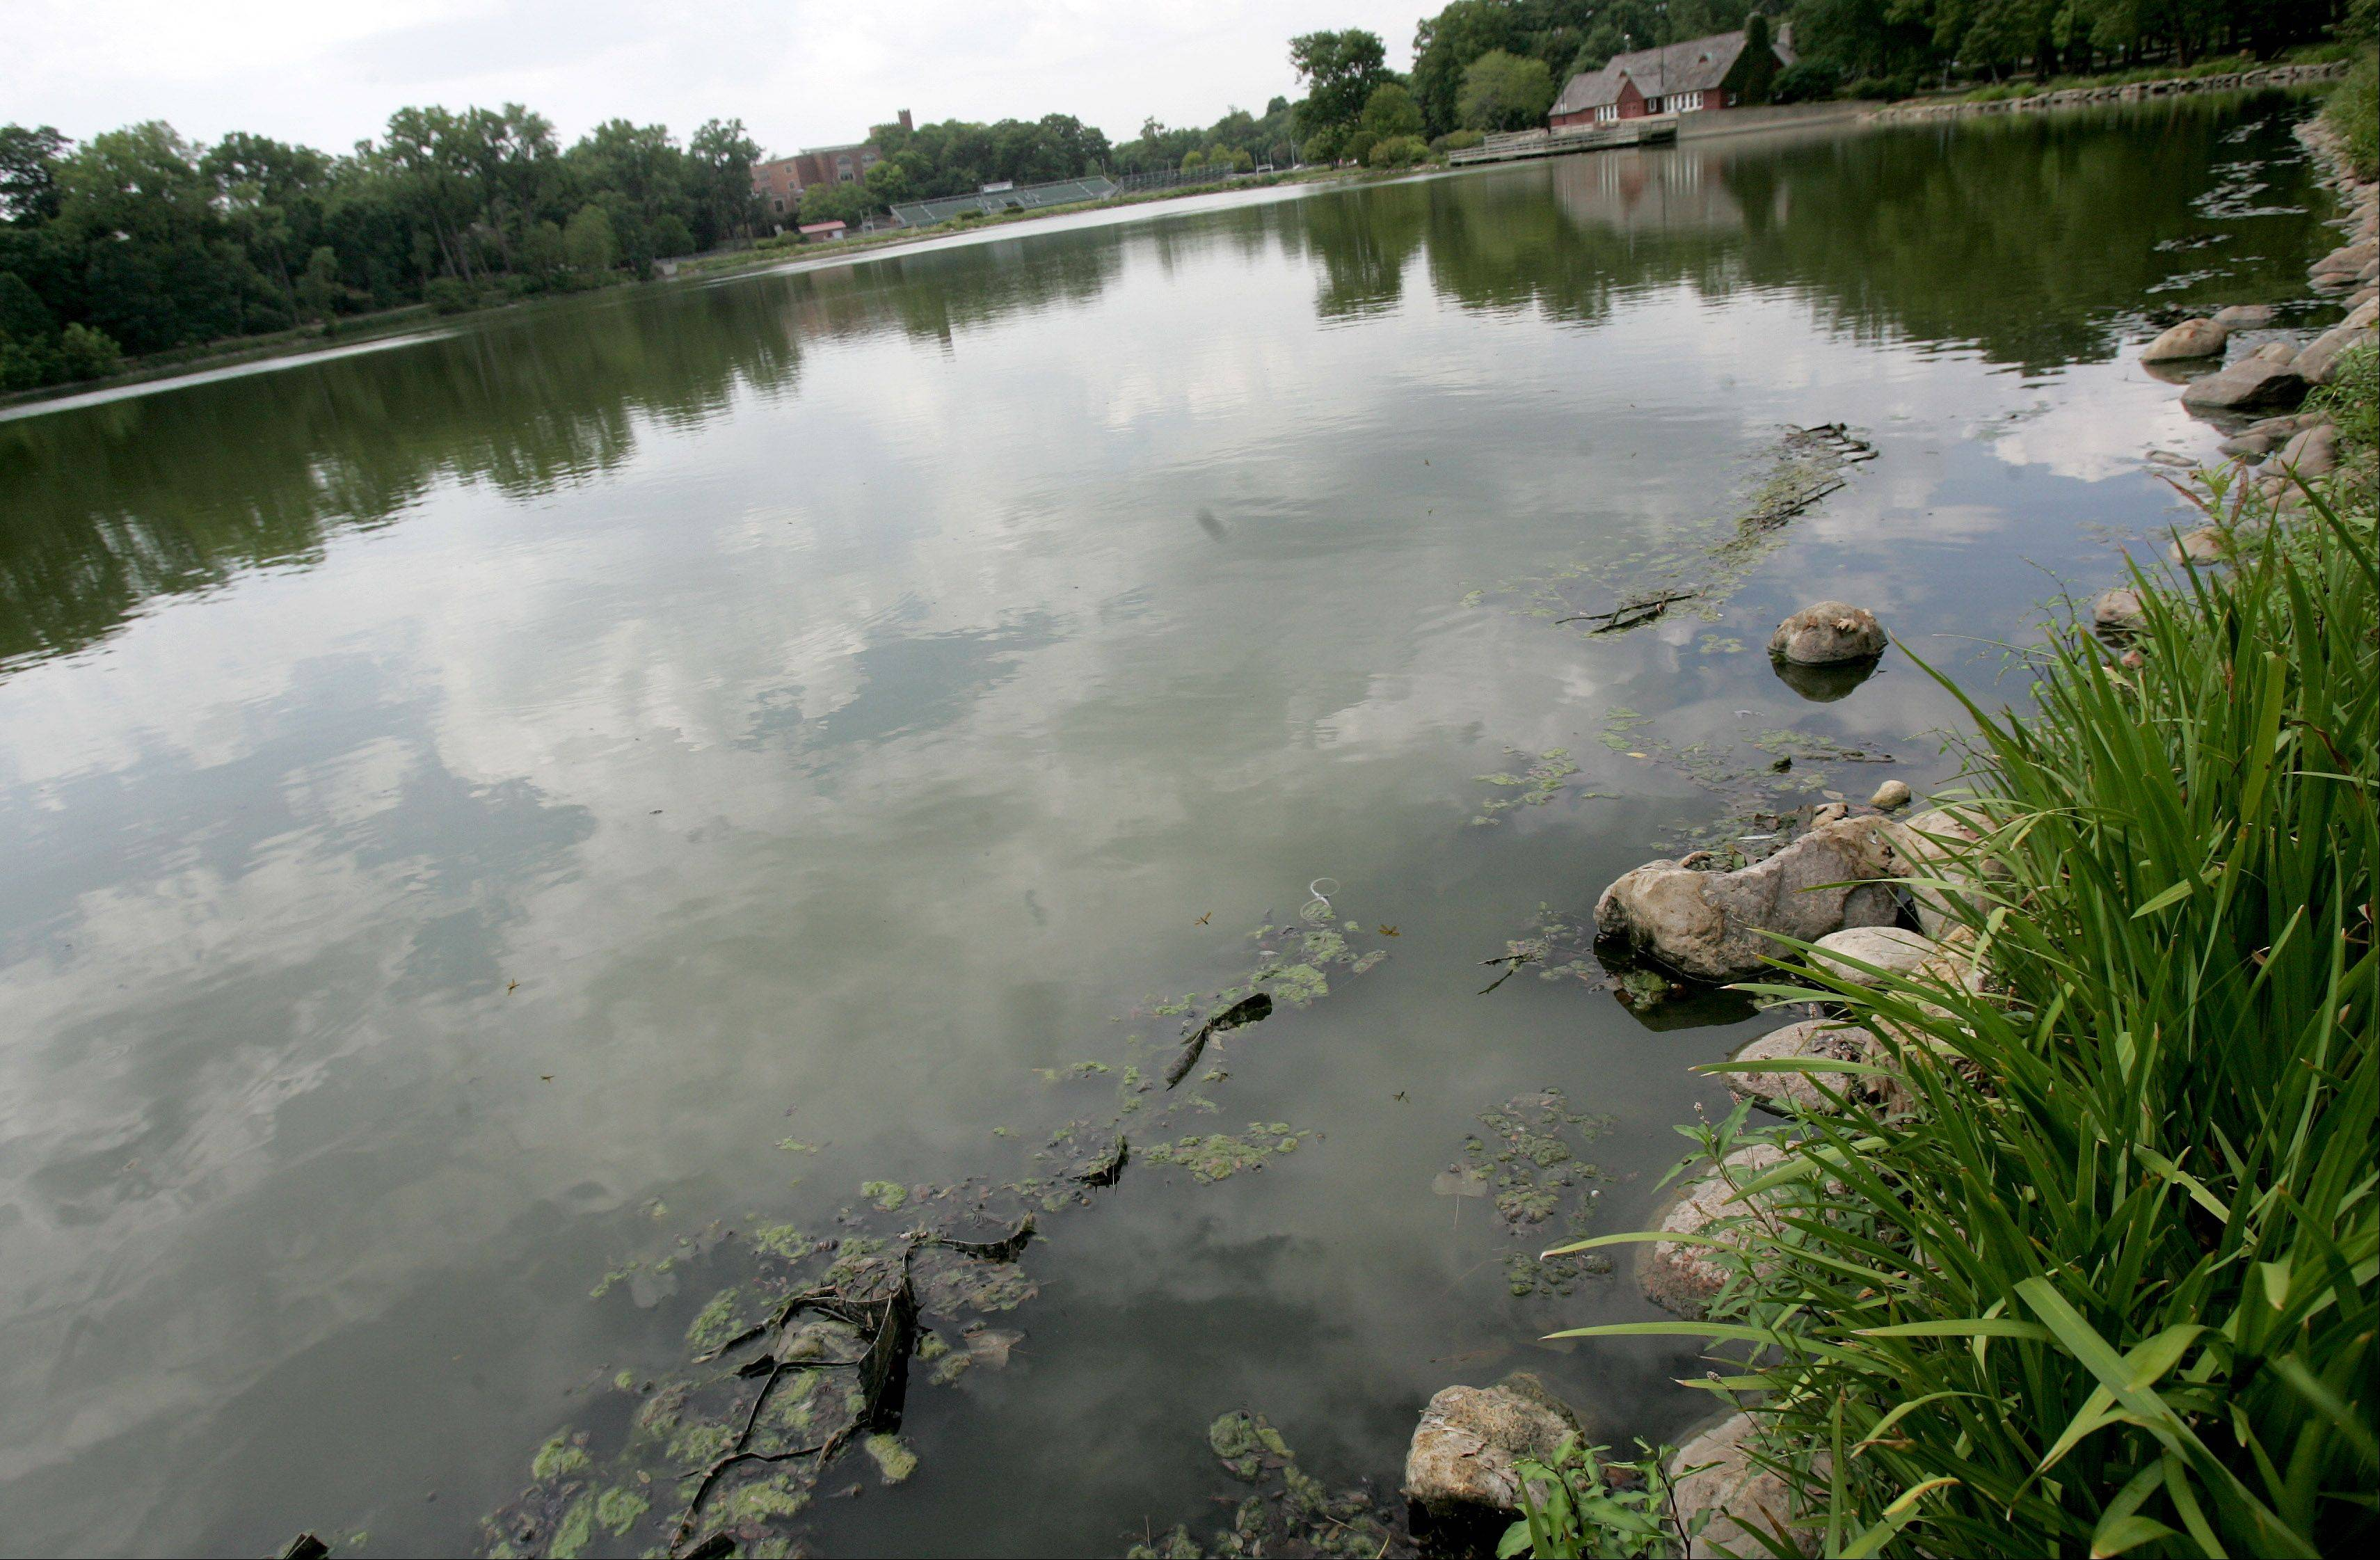 Lake Ellyn in Glen Ellyn has been growing more algae because of the recent heat wave and drought conditions.